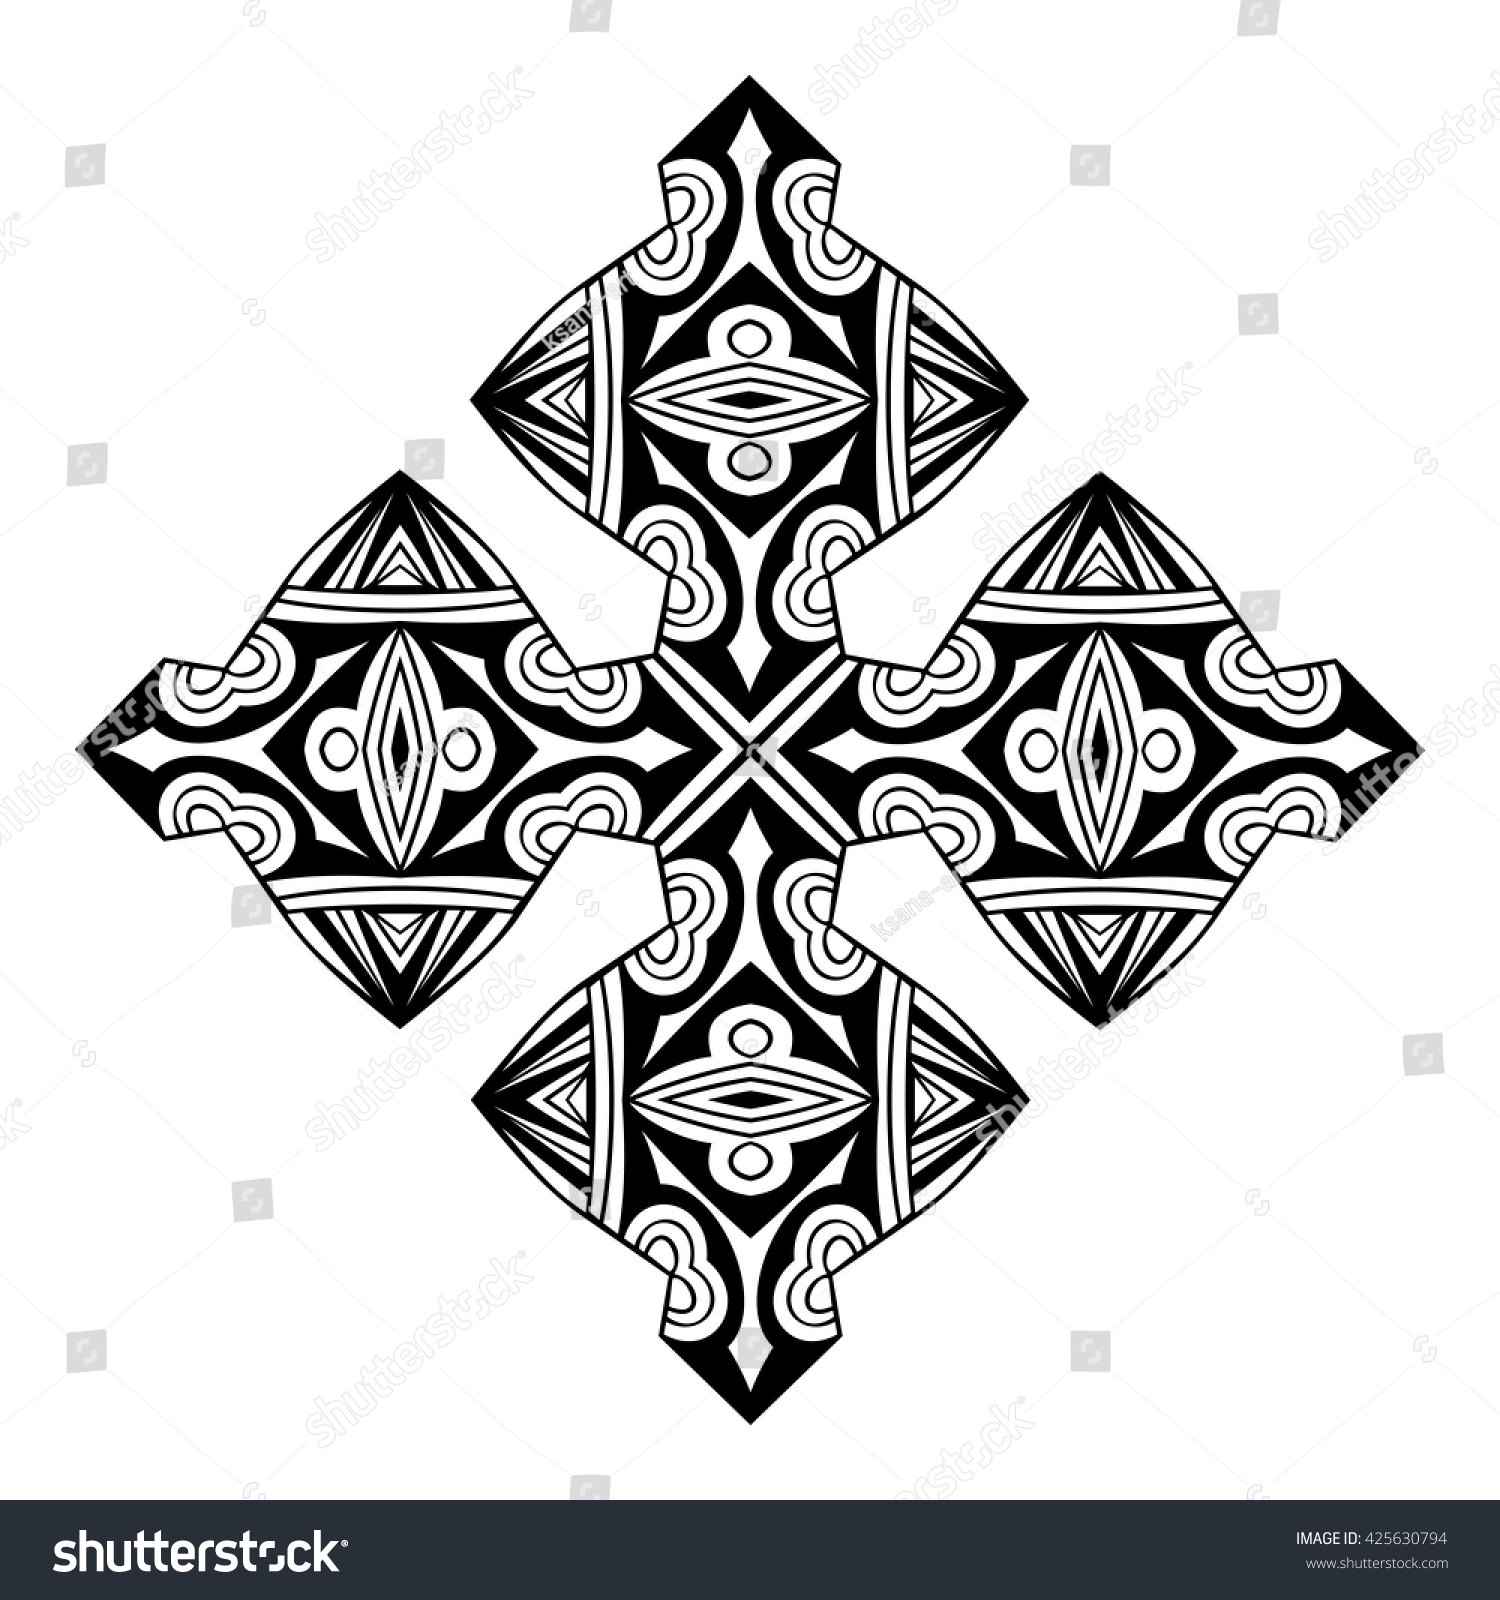 African symbol stamp black white decorative stock vector 425630794 african symbol stamp black and white decorative icon ornate element ethnic pattern tribal biocorpaavc Images